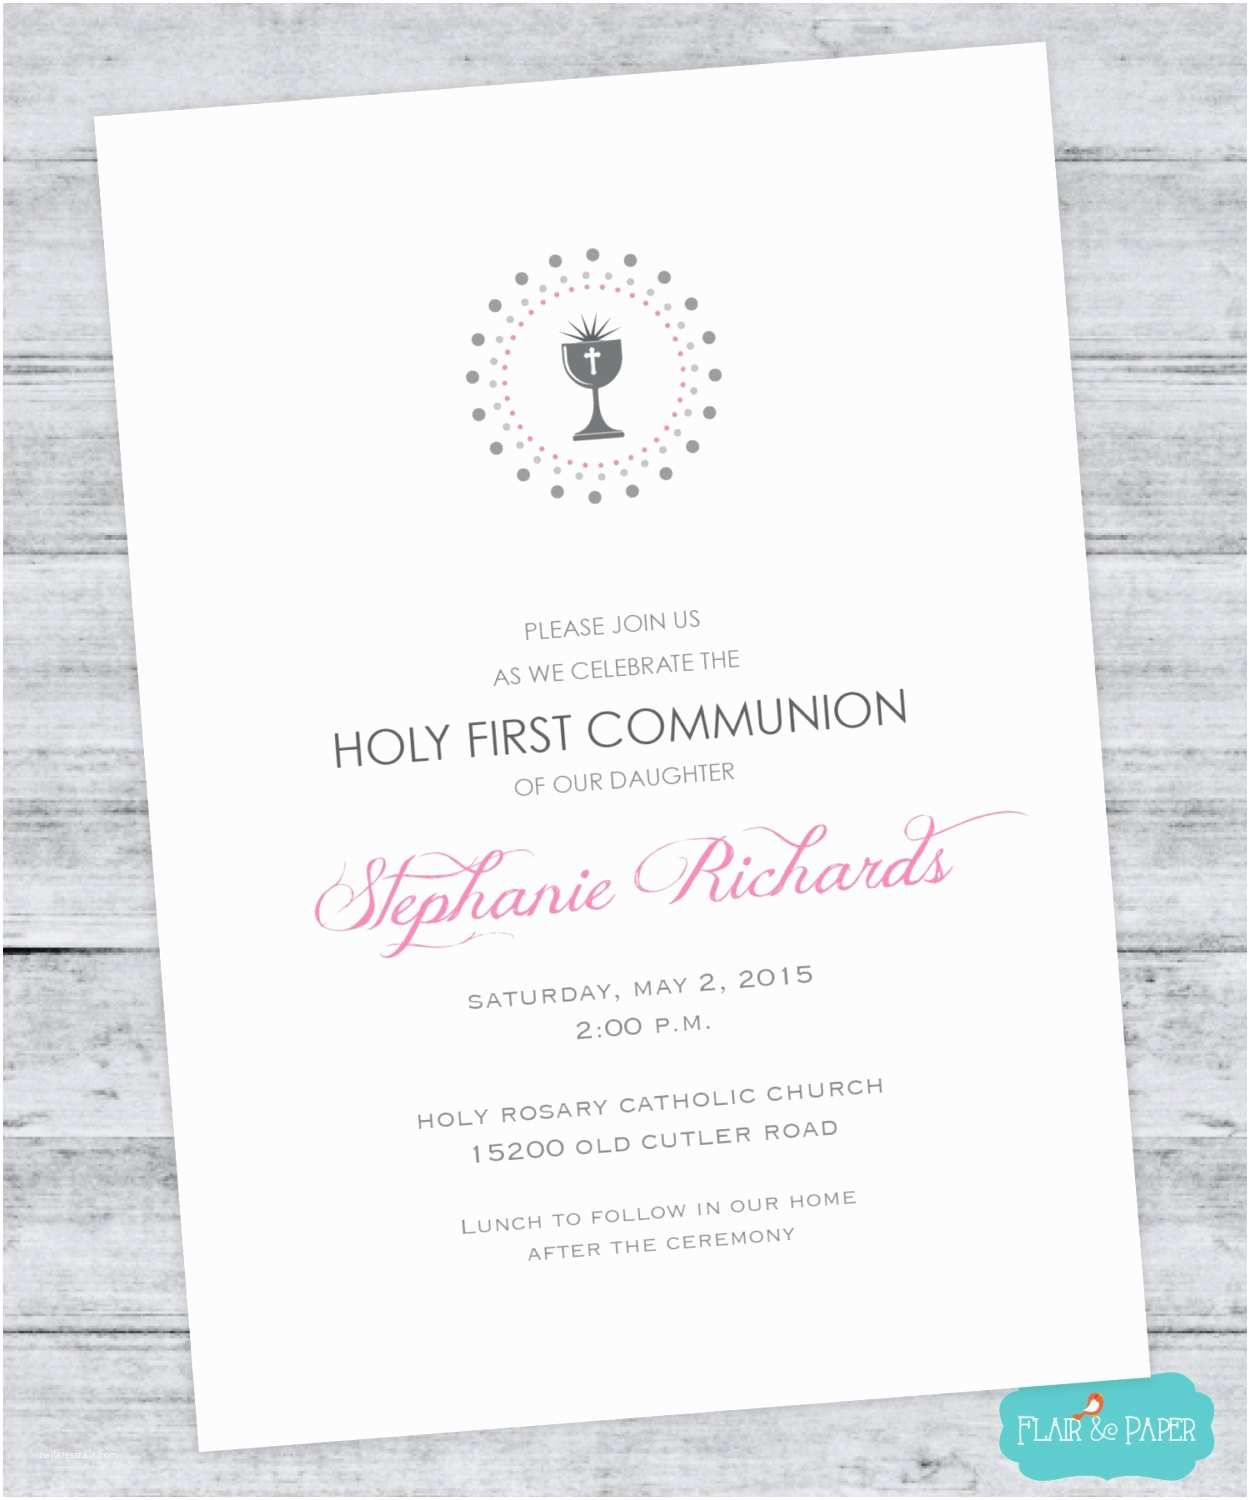 First Communion Invitations First Munion Invitation Holy First Munion by